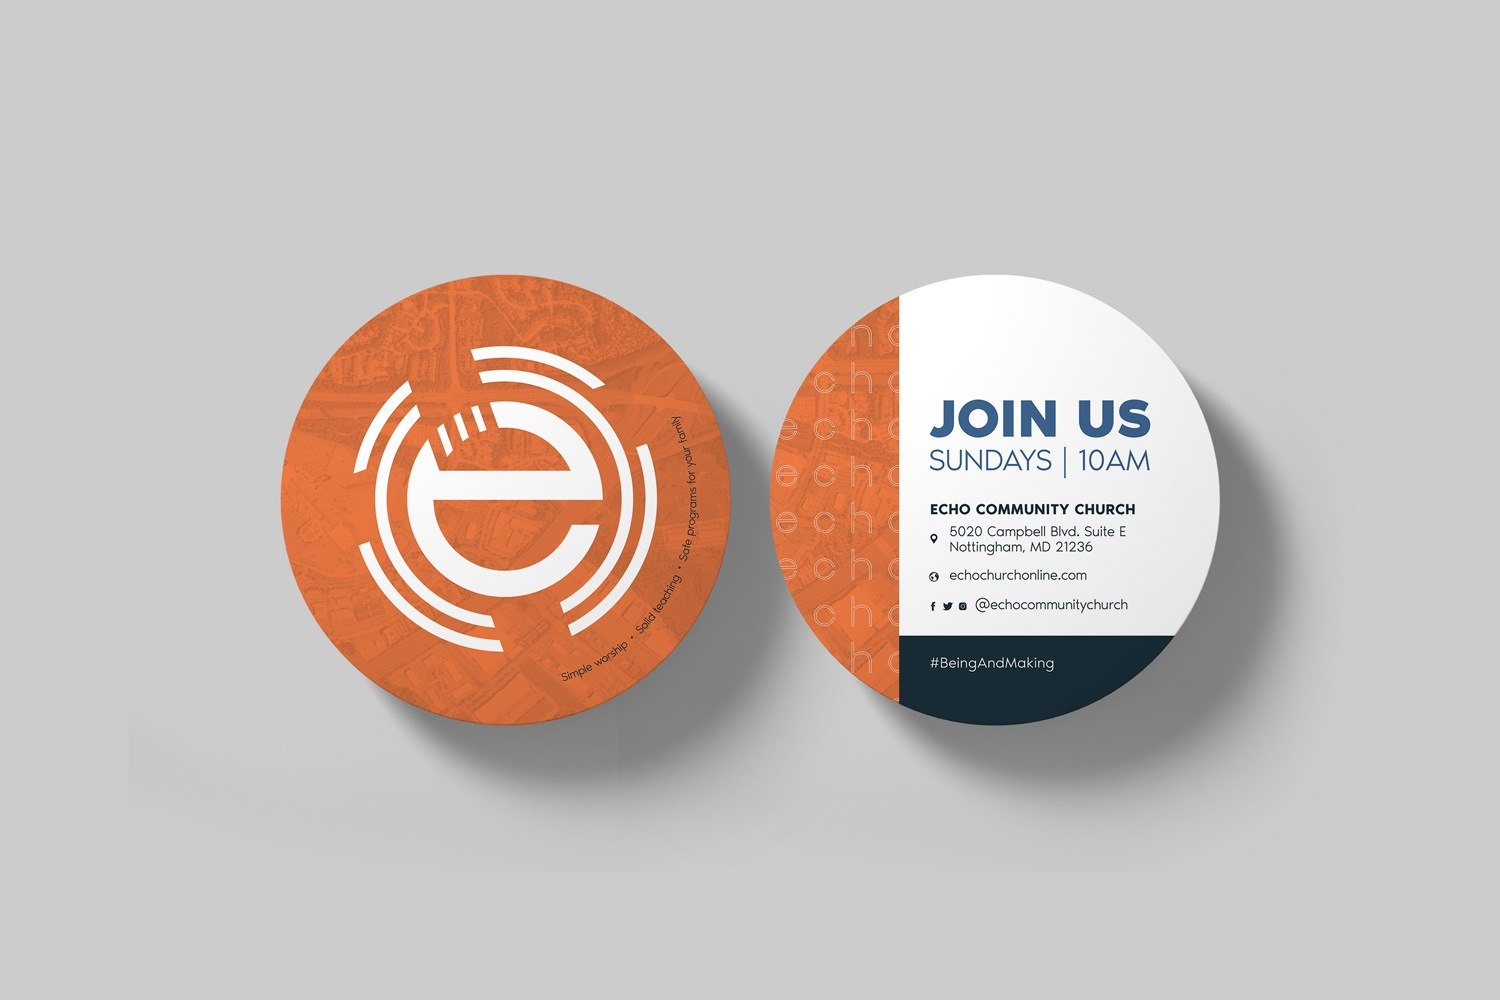 outreach invitations for church marketing materials, 4 in. circle brand design by Abstract Union